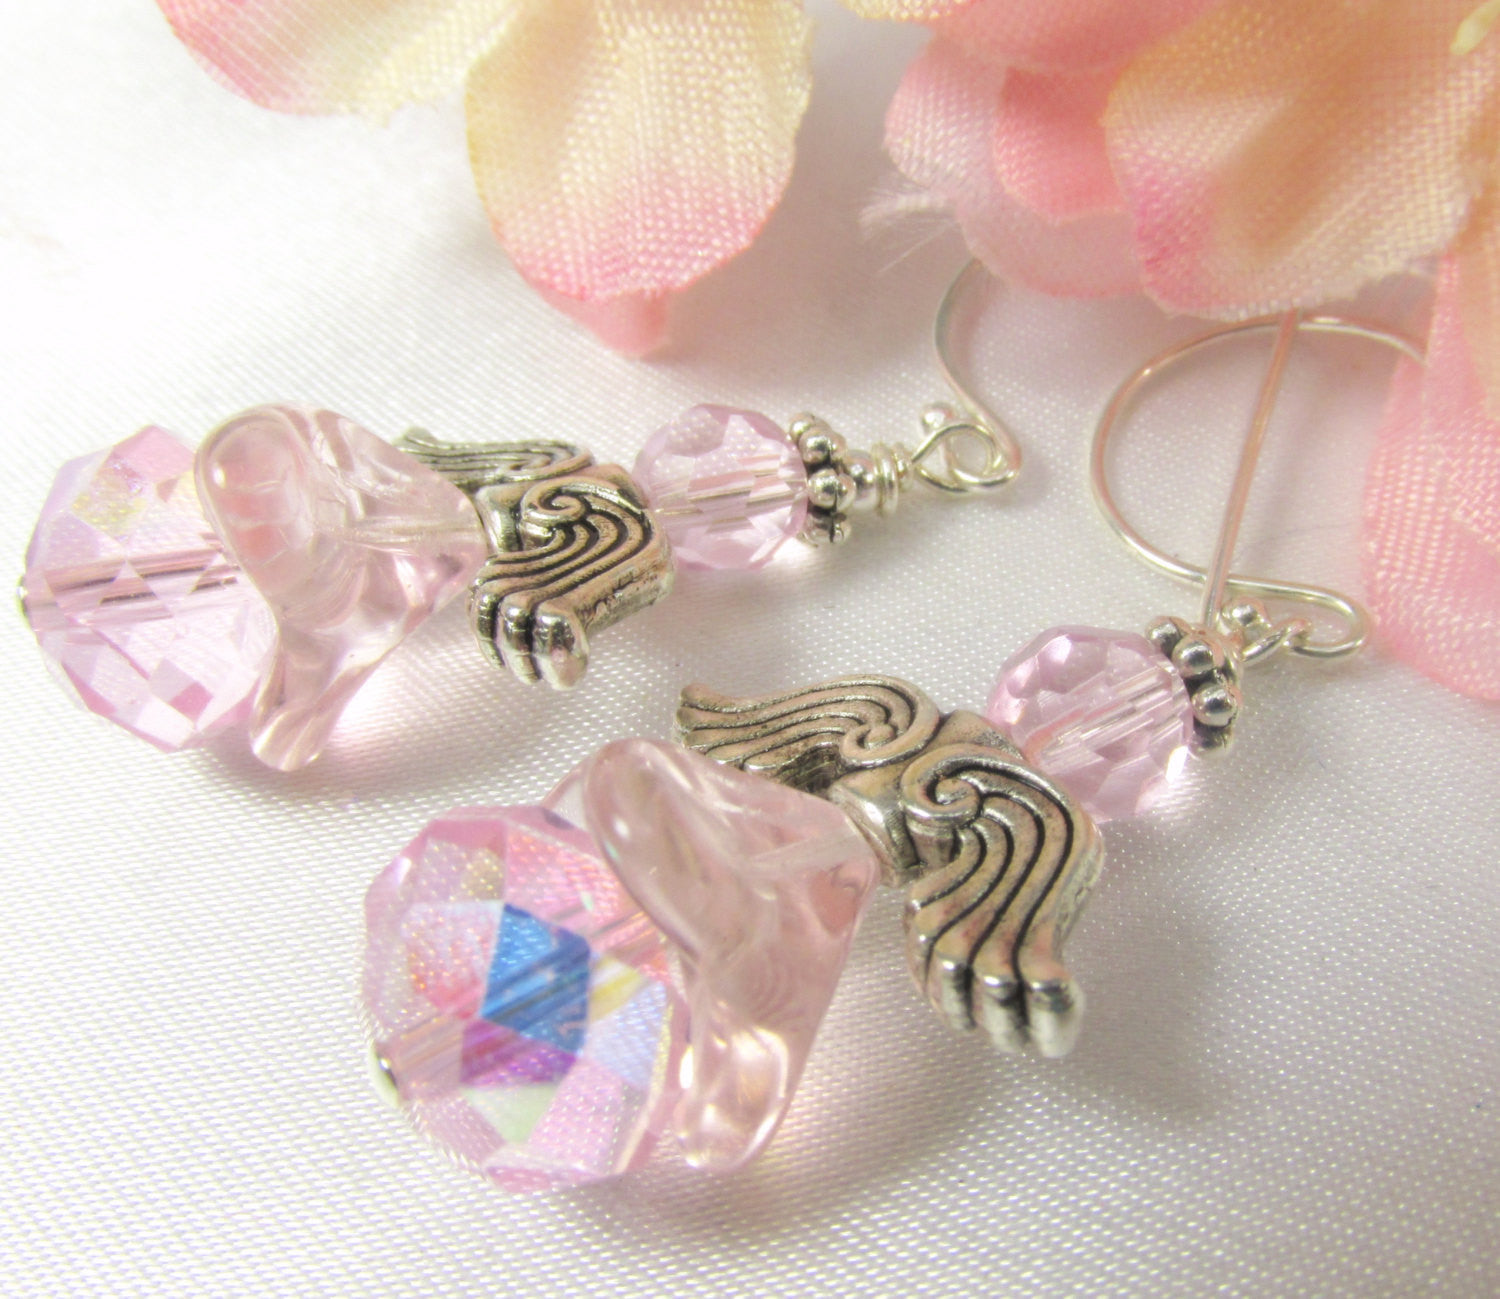 Angel Earrings in Pale Pink AB on Bali Sterling Silver Wires with Antiique Silver wings - Odyssey Creations